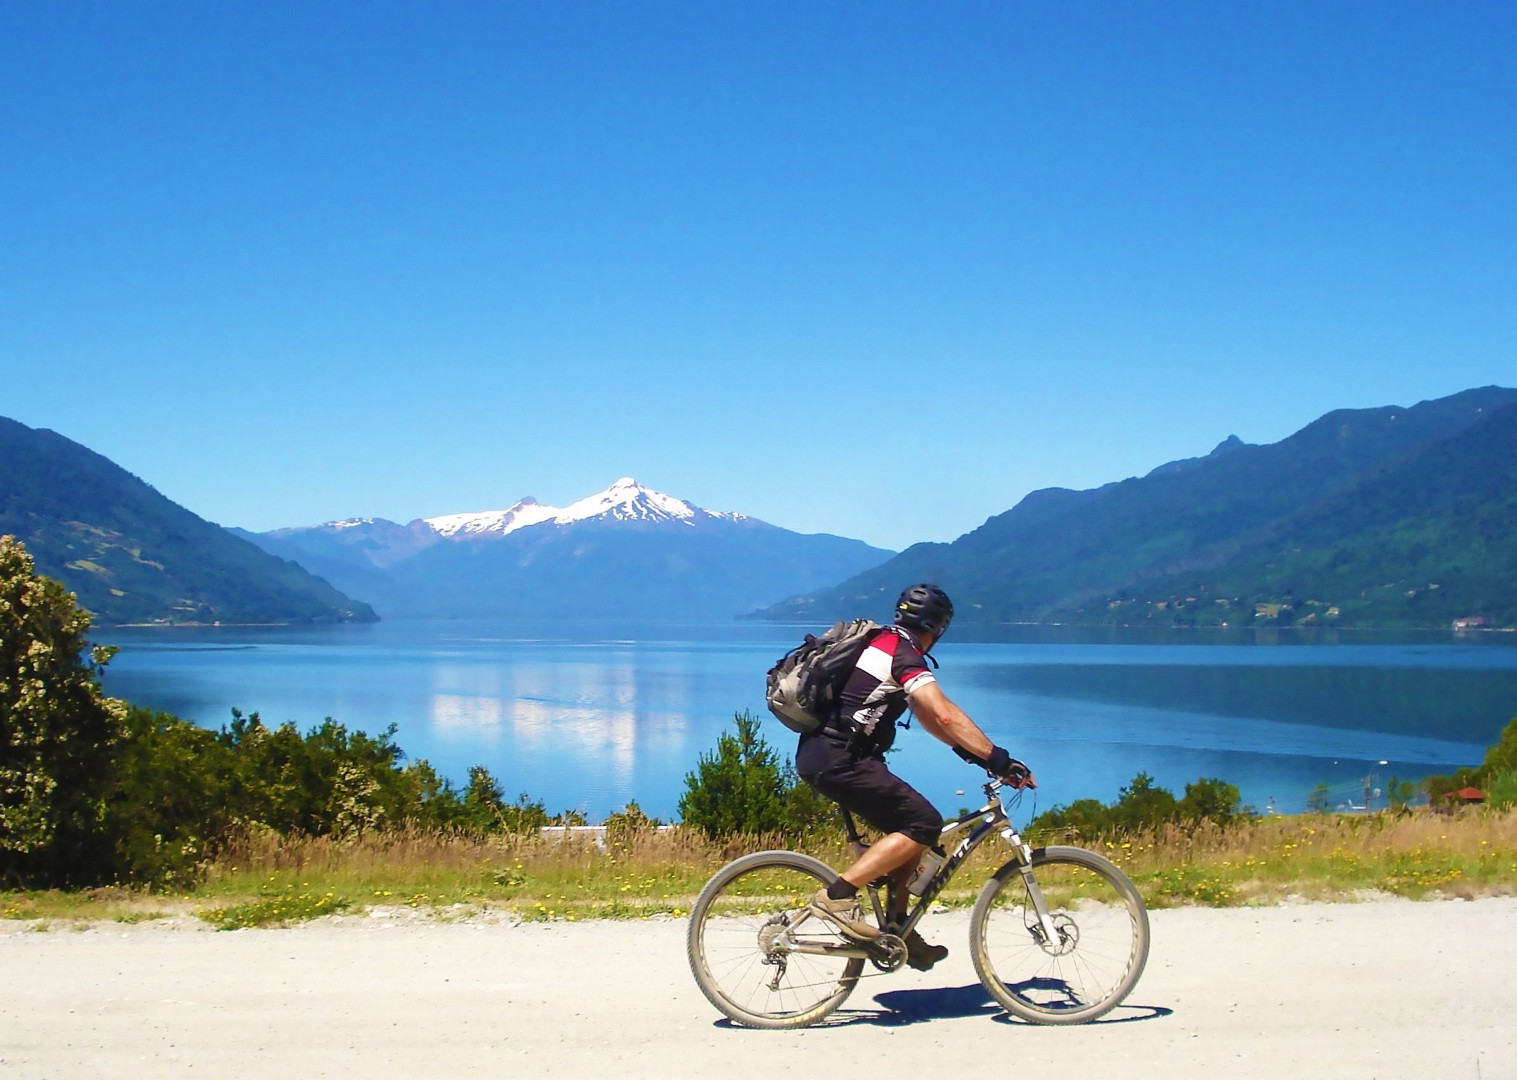 chile-cycling-holiday-volcano-adventure-nature.jpg - Chile and Argentinian - Lake District - Cycling Adventures